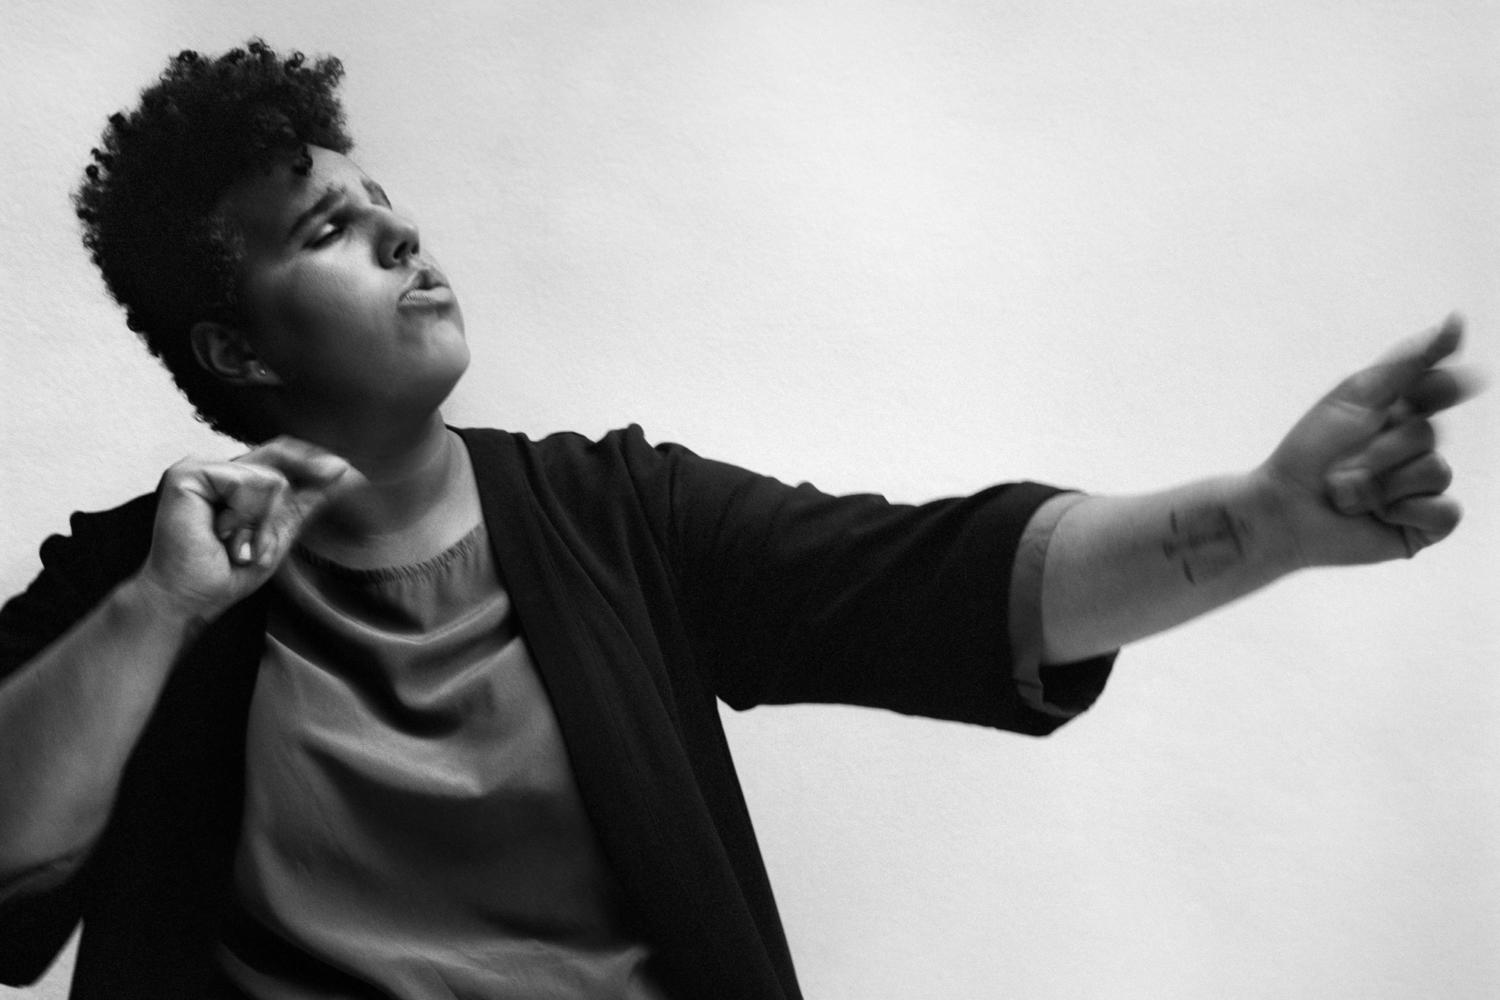 Tracks: Brittany Howard, The Futureheads, King Gizzard and the Lizard Wizard and more